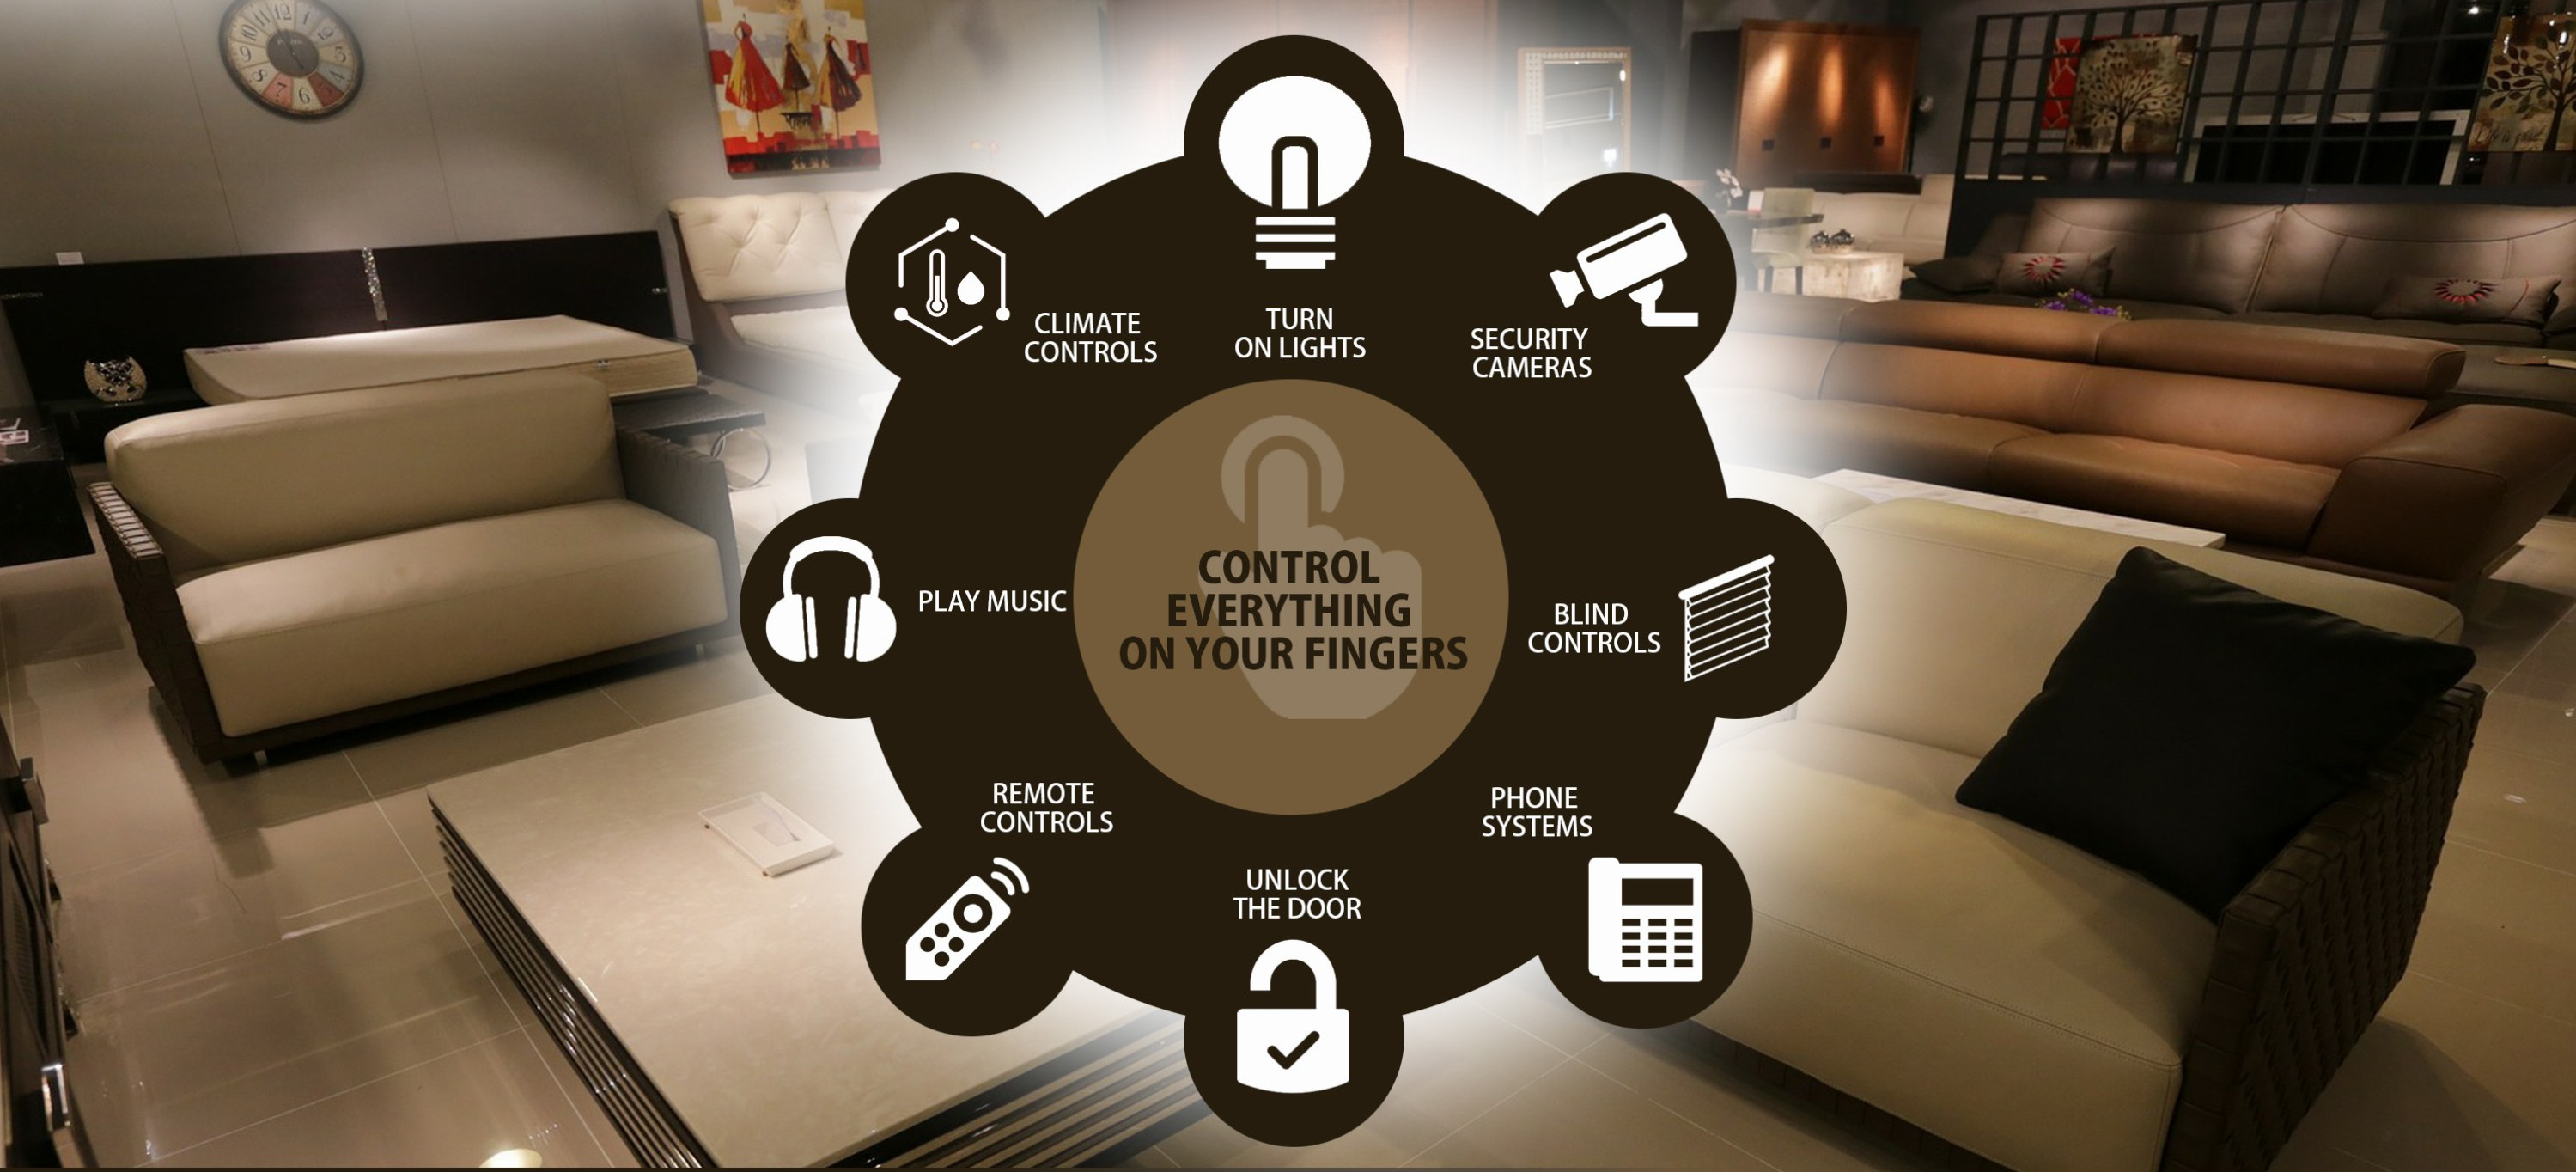 Changing Face Of Home Automation Solutions: What To Expect In 2015